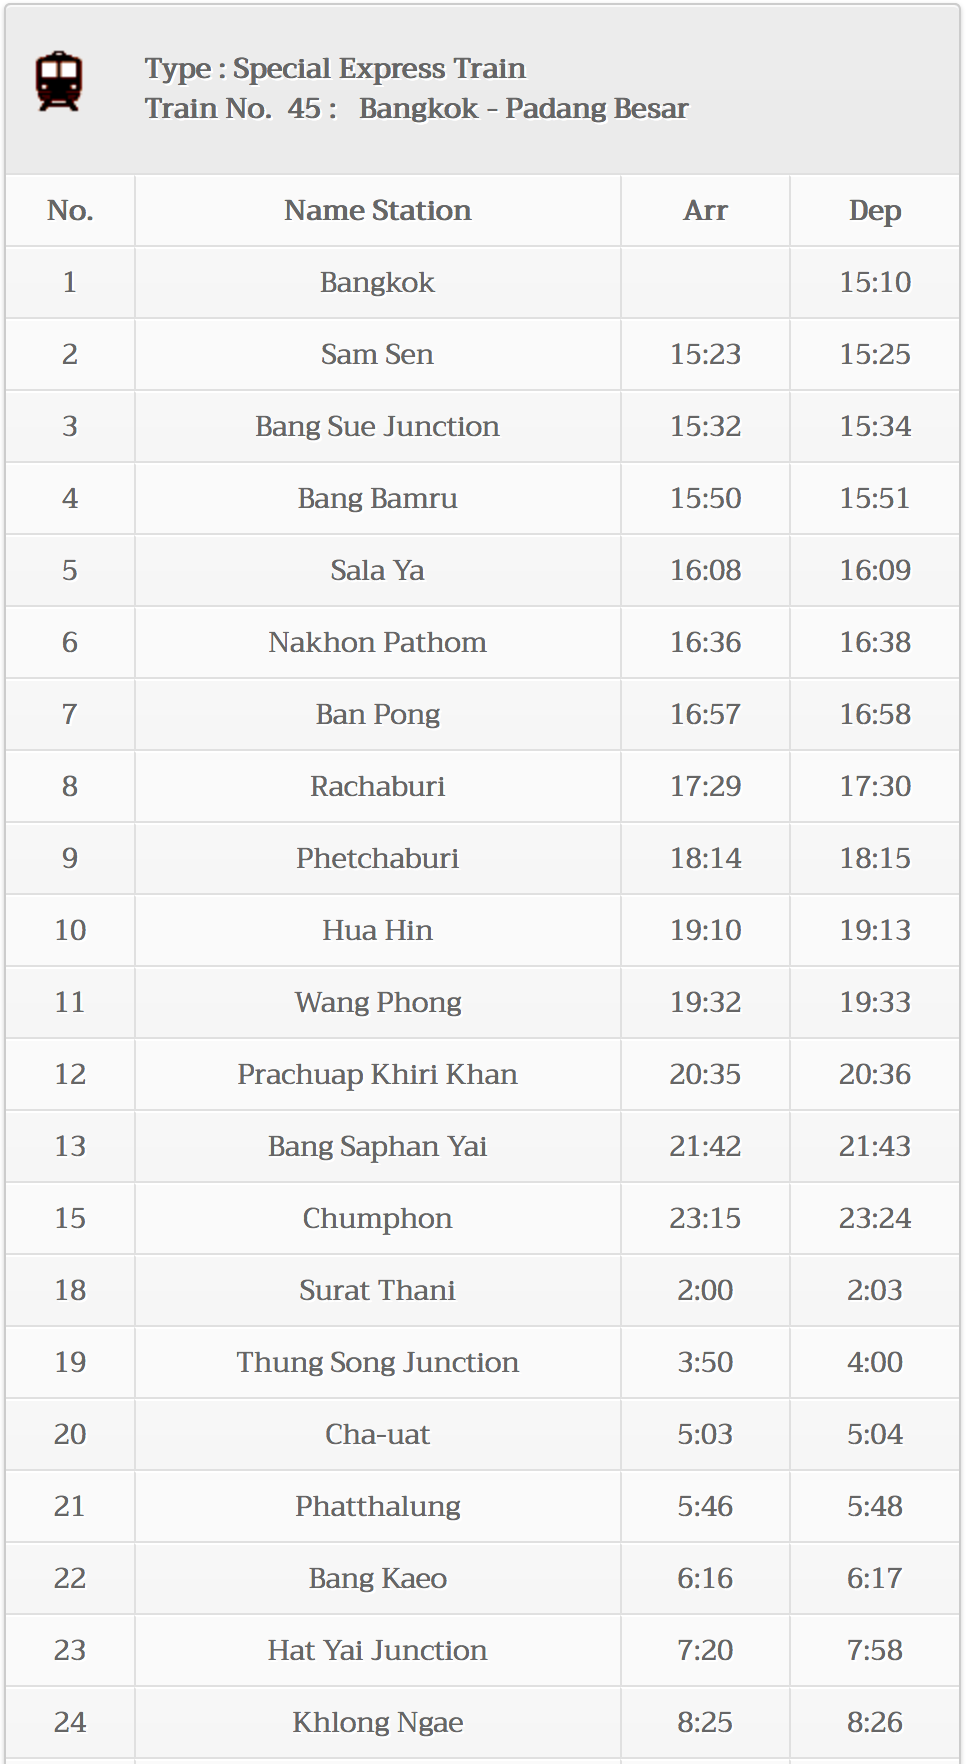 train-45-bangkok-to-padang-besar-timetable.png